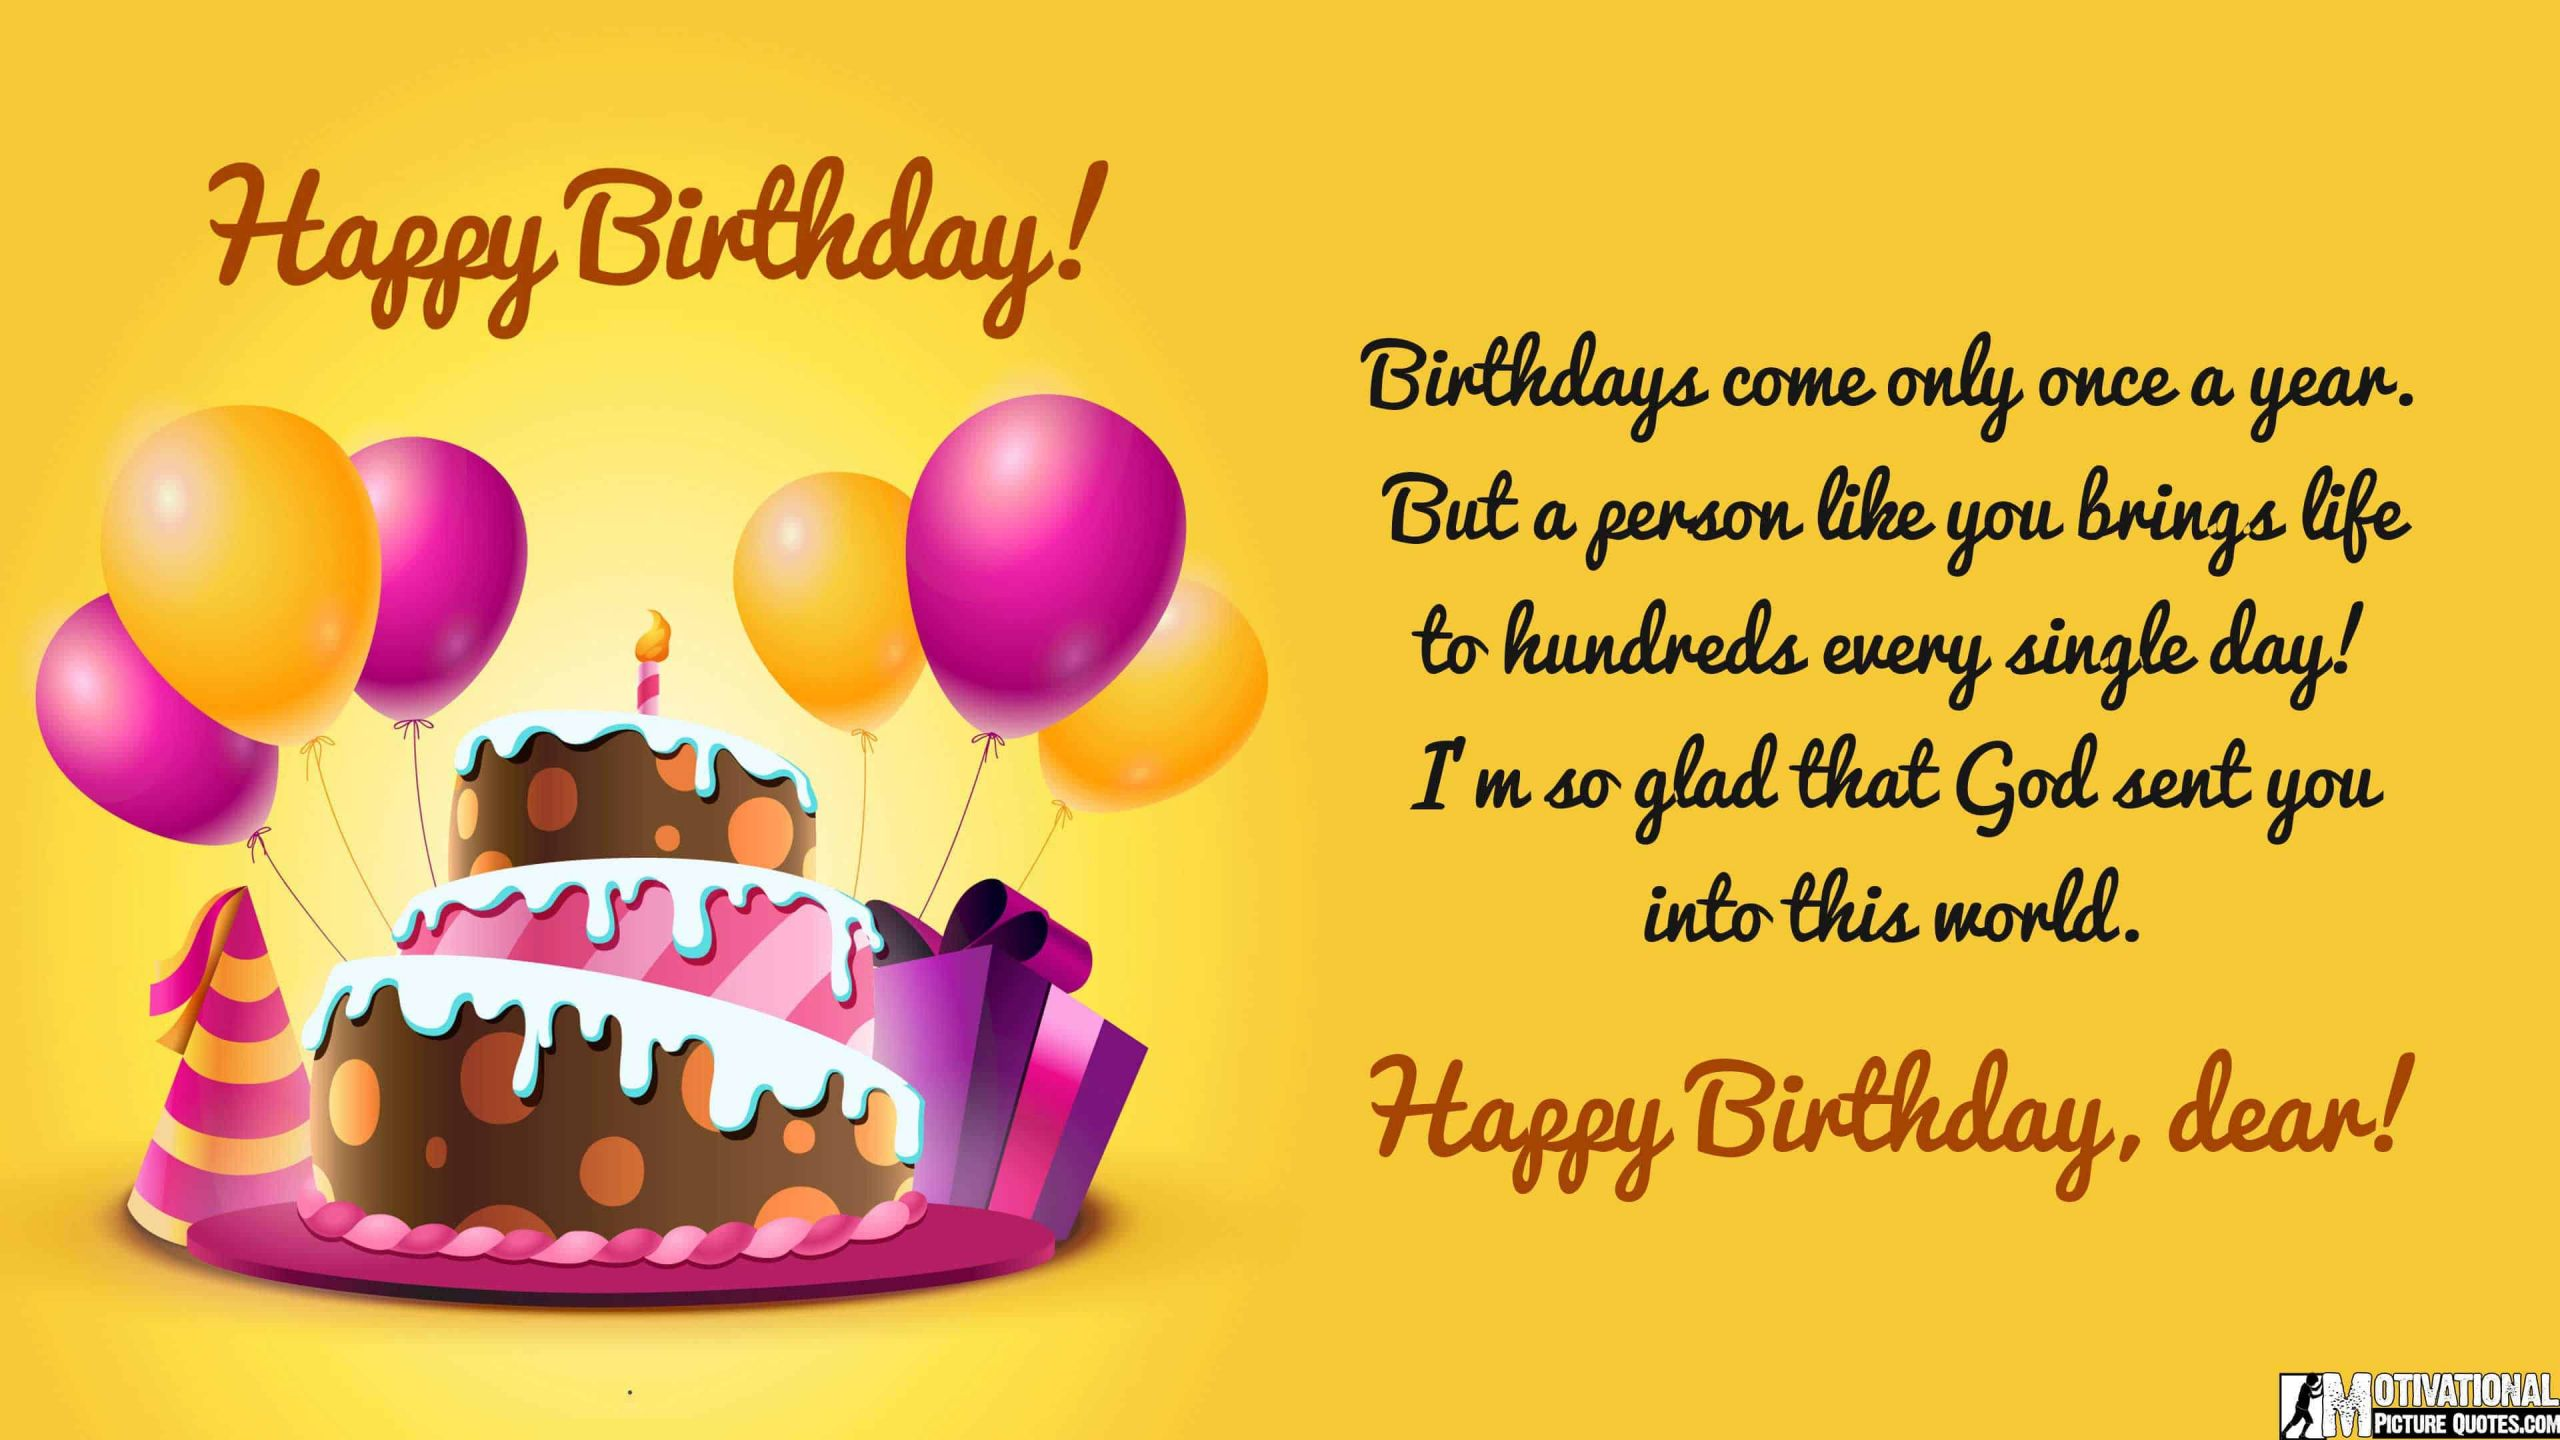 Birthday Wish Quotes  50 Happy Birthday For Him With Quotes iLove Messages